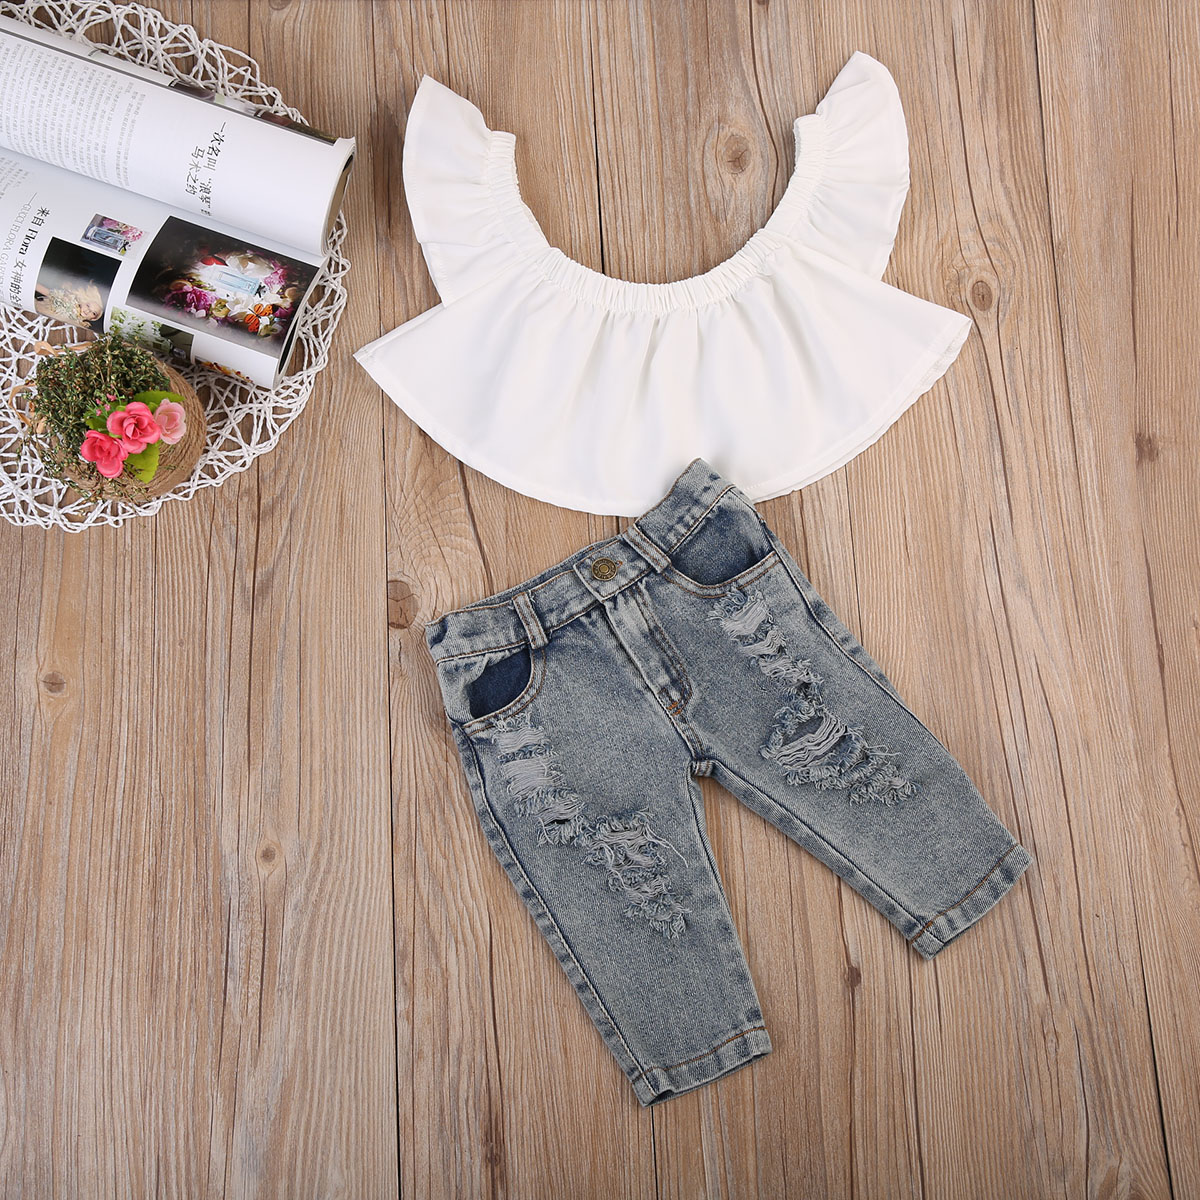 2pcs Cute Baby Girls Off Shoulder Tops Holes Denim Pants Outfits Clothes Sets Summer Autumn Kids Girls Clothing 0-4Y toddler baby kids girls clothes sets summer lace tops t shirt short sleeve denim jeans pants cute outfits clothing set